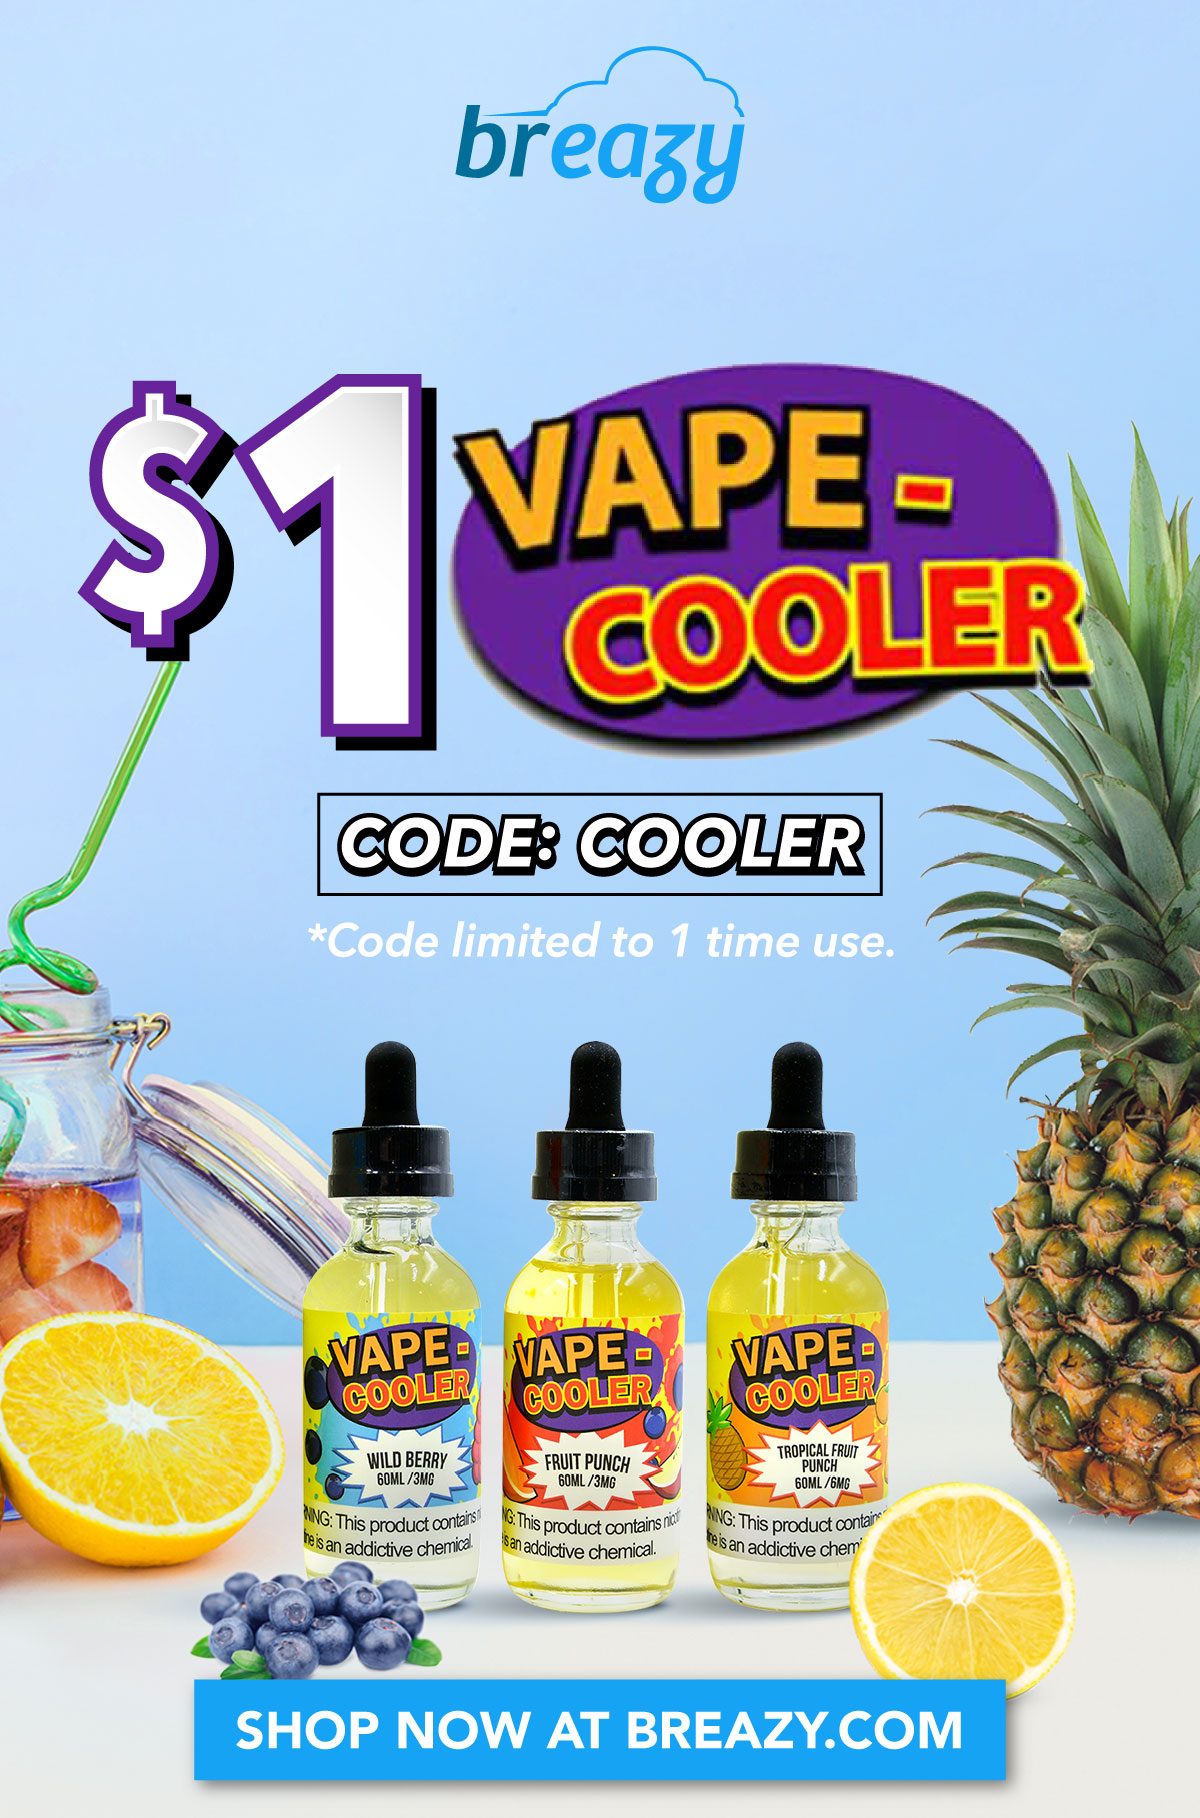 $1 Vape Cooler with code: COOLER